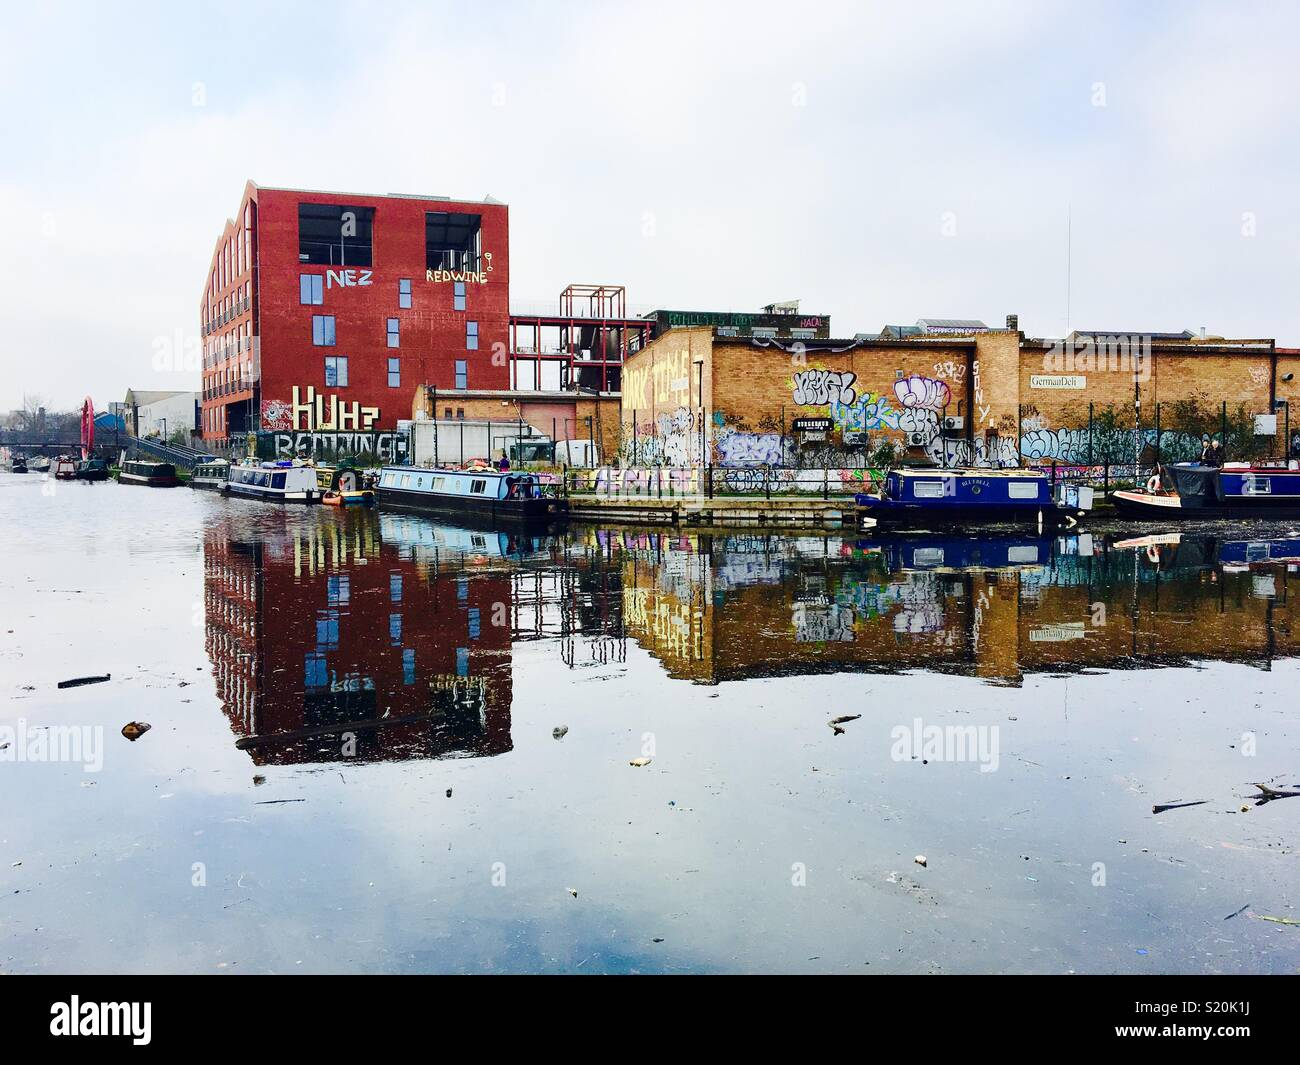 Hackney Reflexionen Stockbild